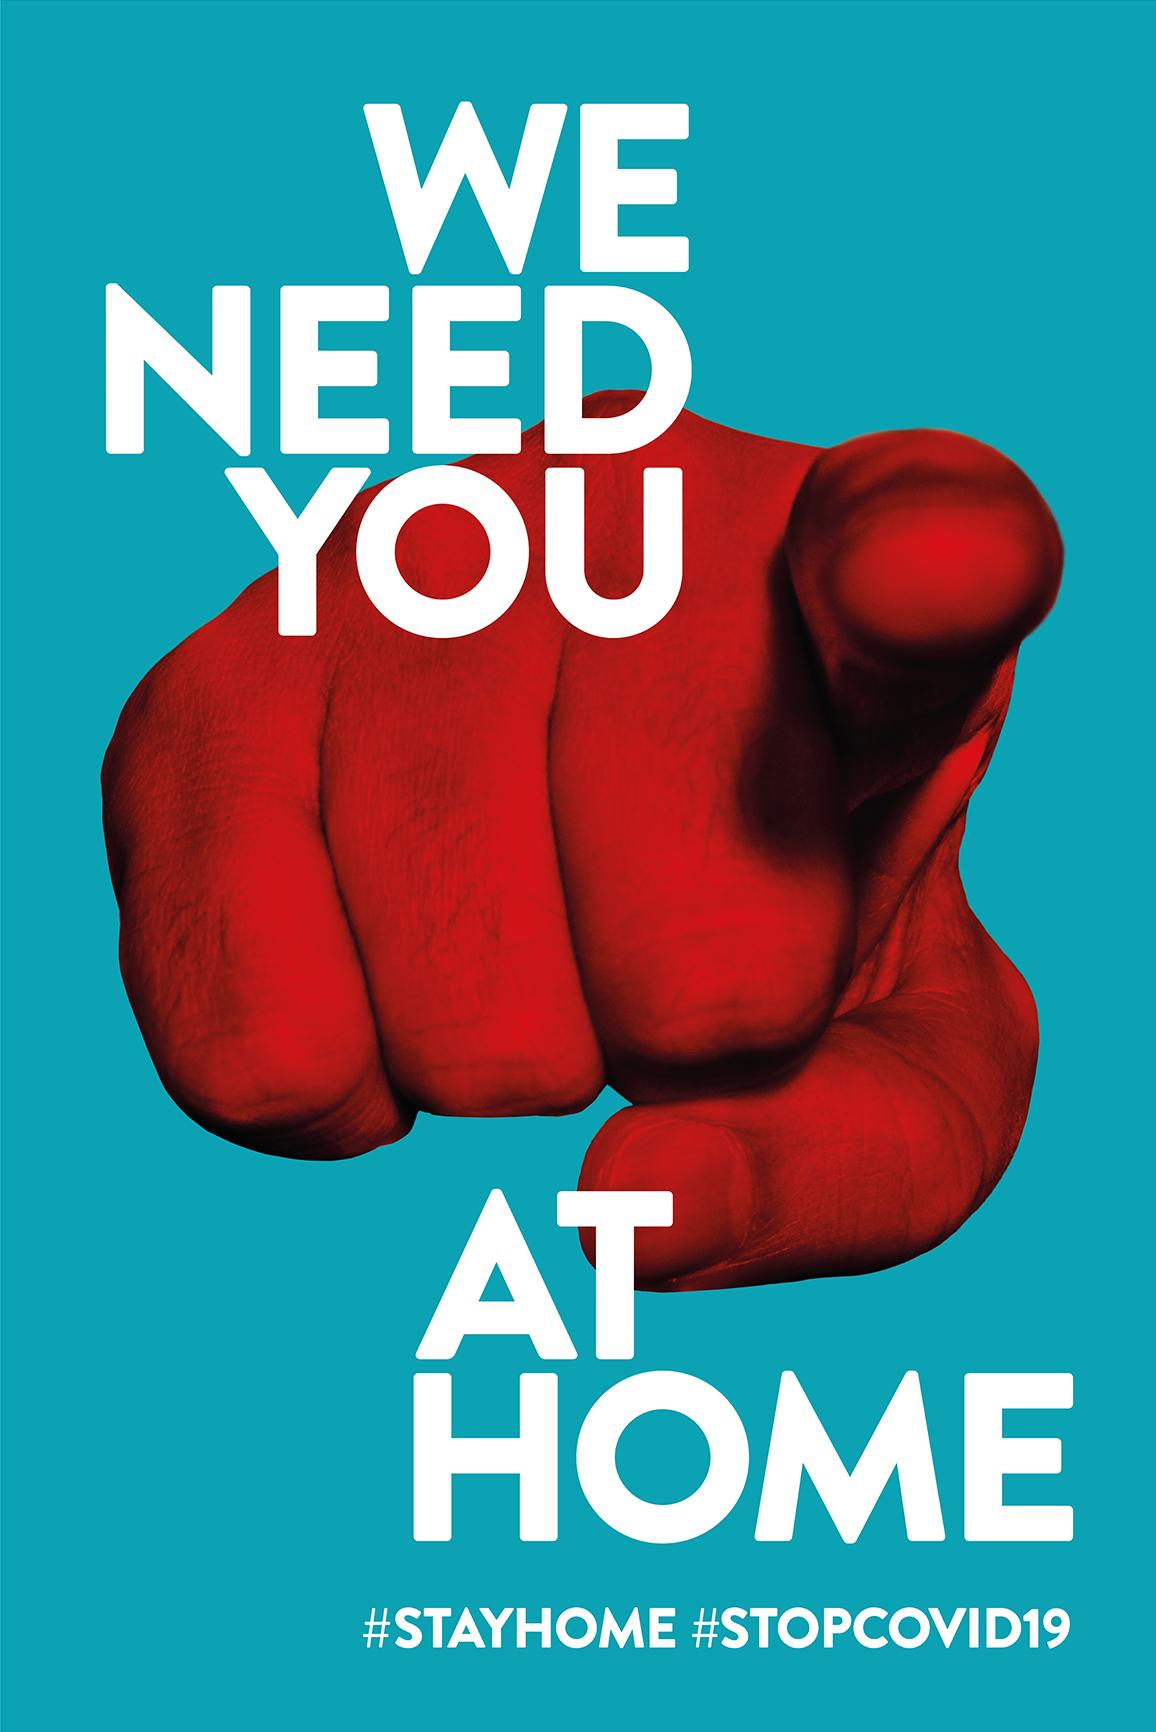 We need you at home